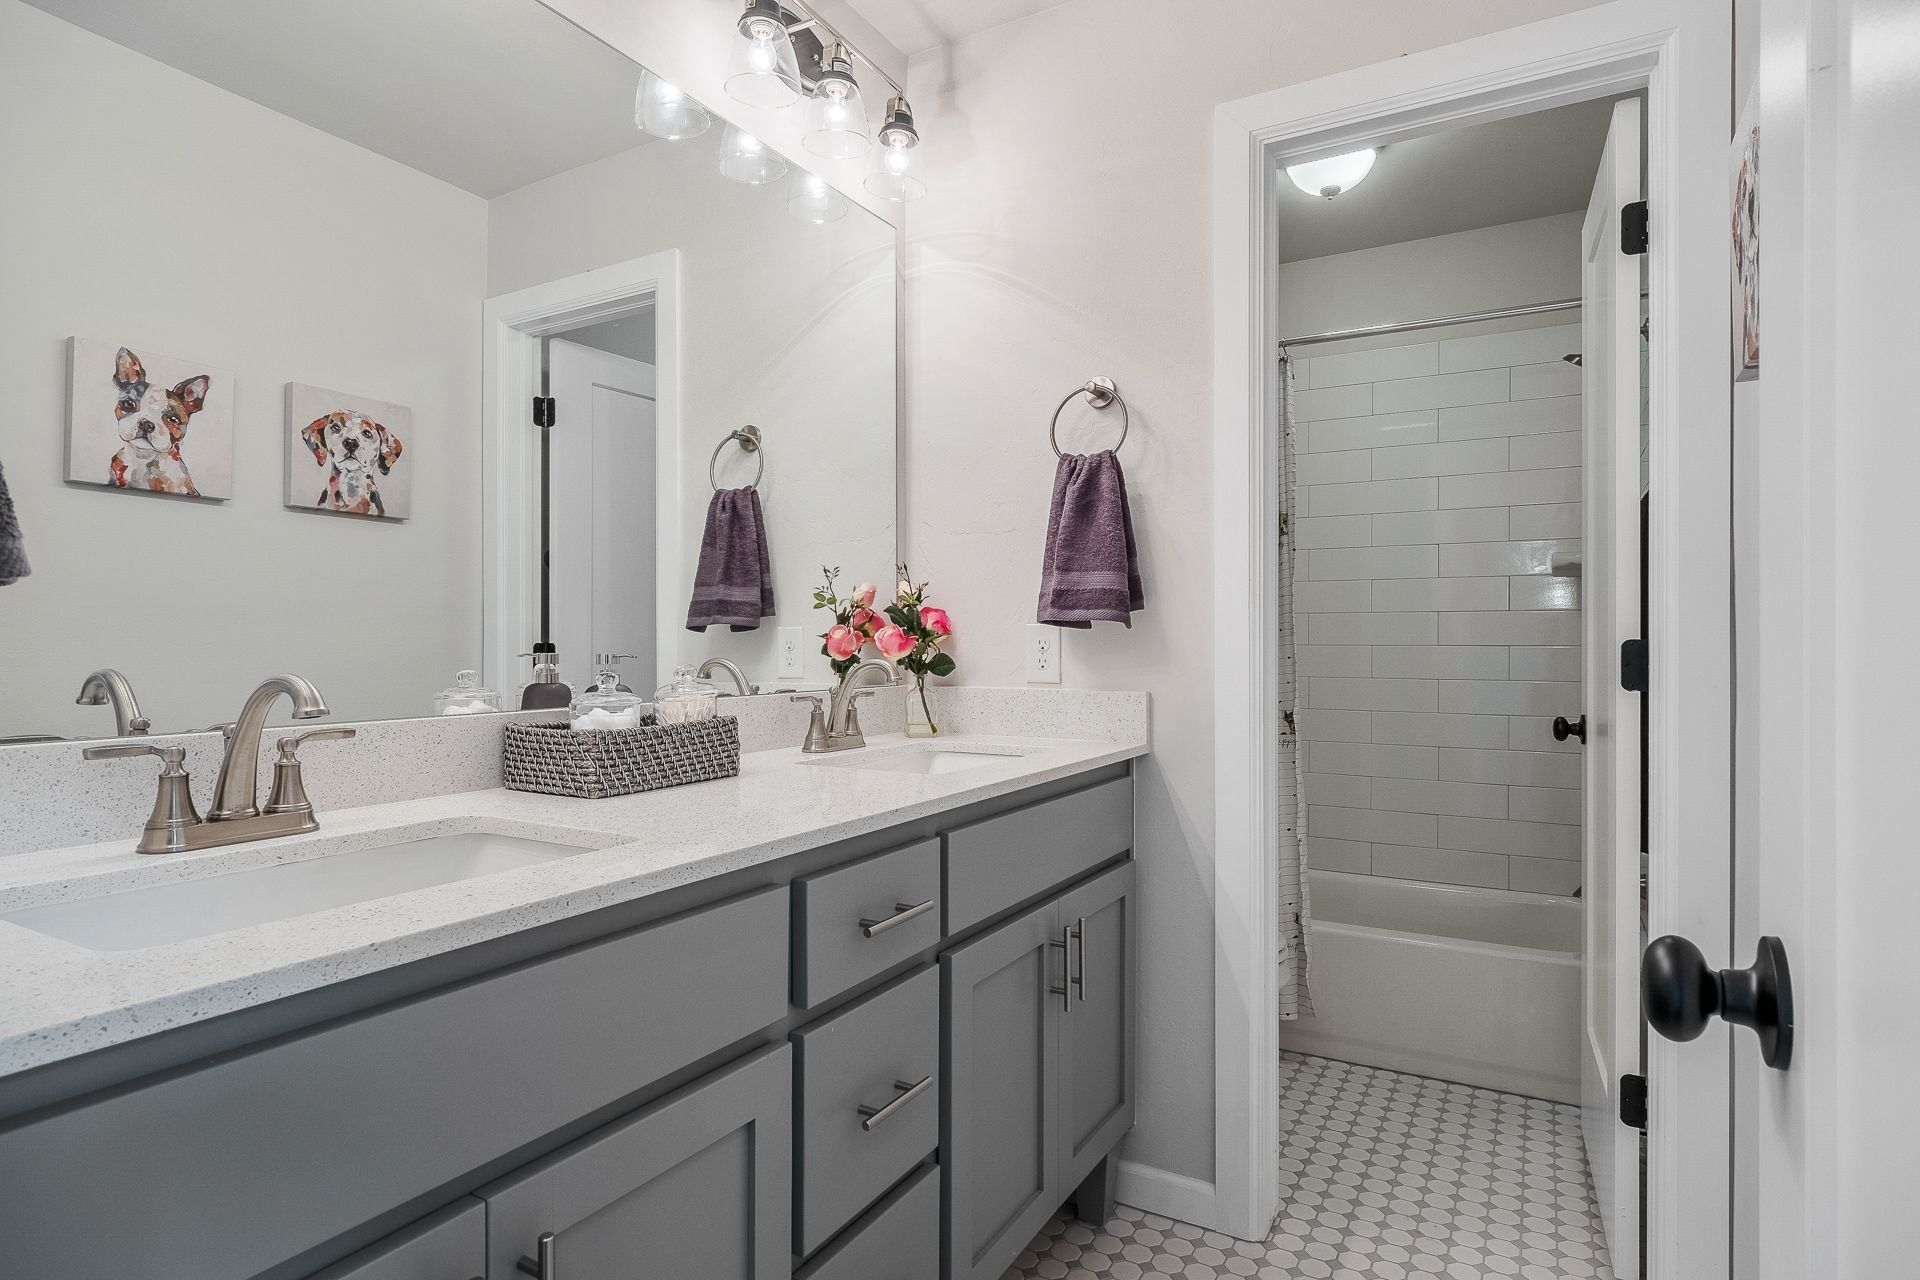 Bathroom featured in the Nottingham By Ideal Homes in Oklahoma City, OK